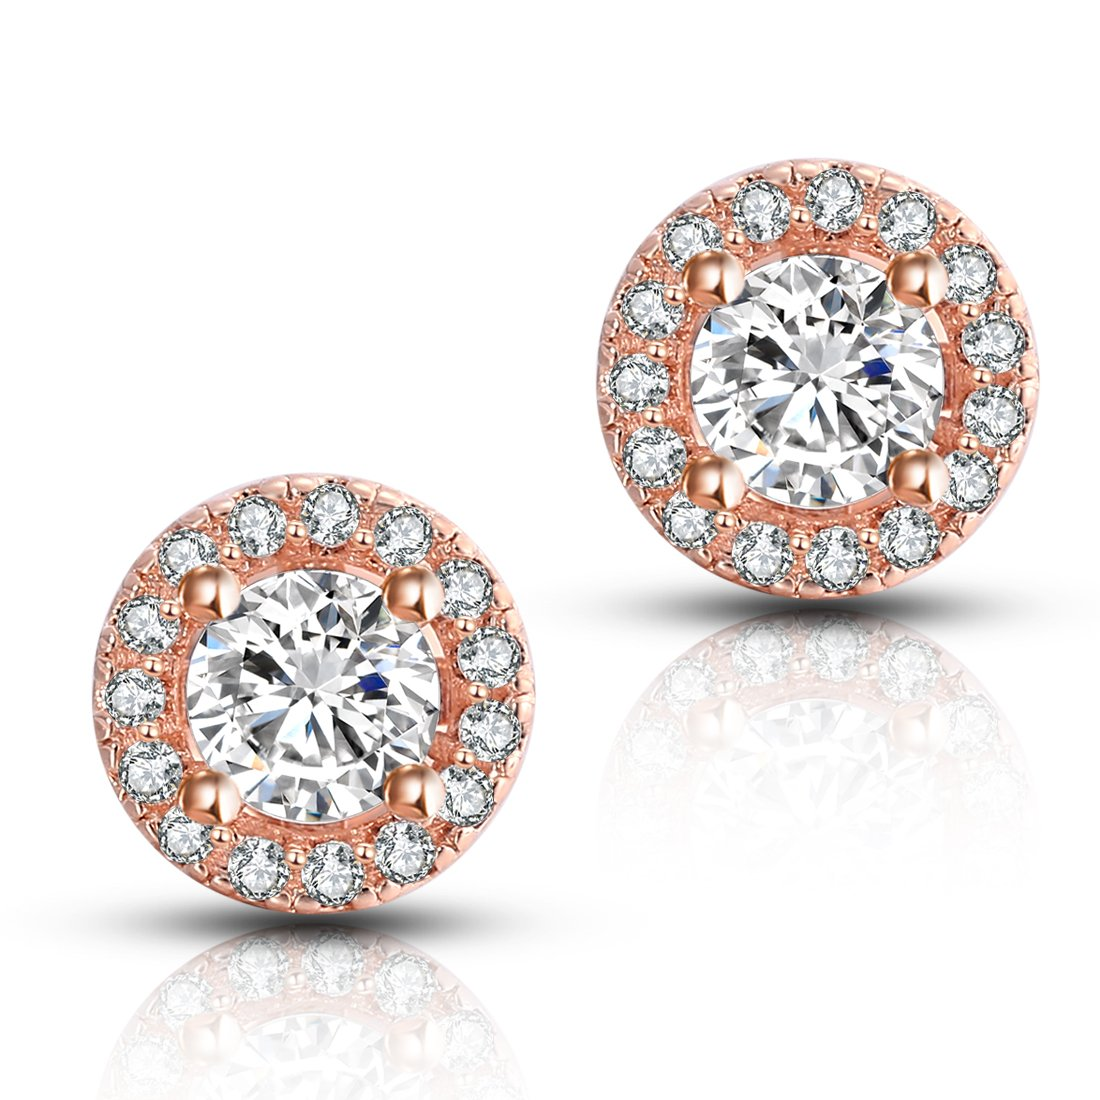 18K Rose Gold-Plated Cluster Round Cut Stud Earrings (1.66cttw) Sally Ornament Co. Ltd. EAG-03-RG